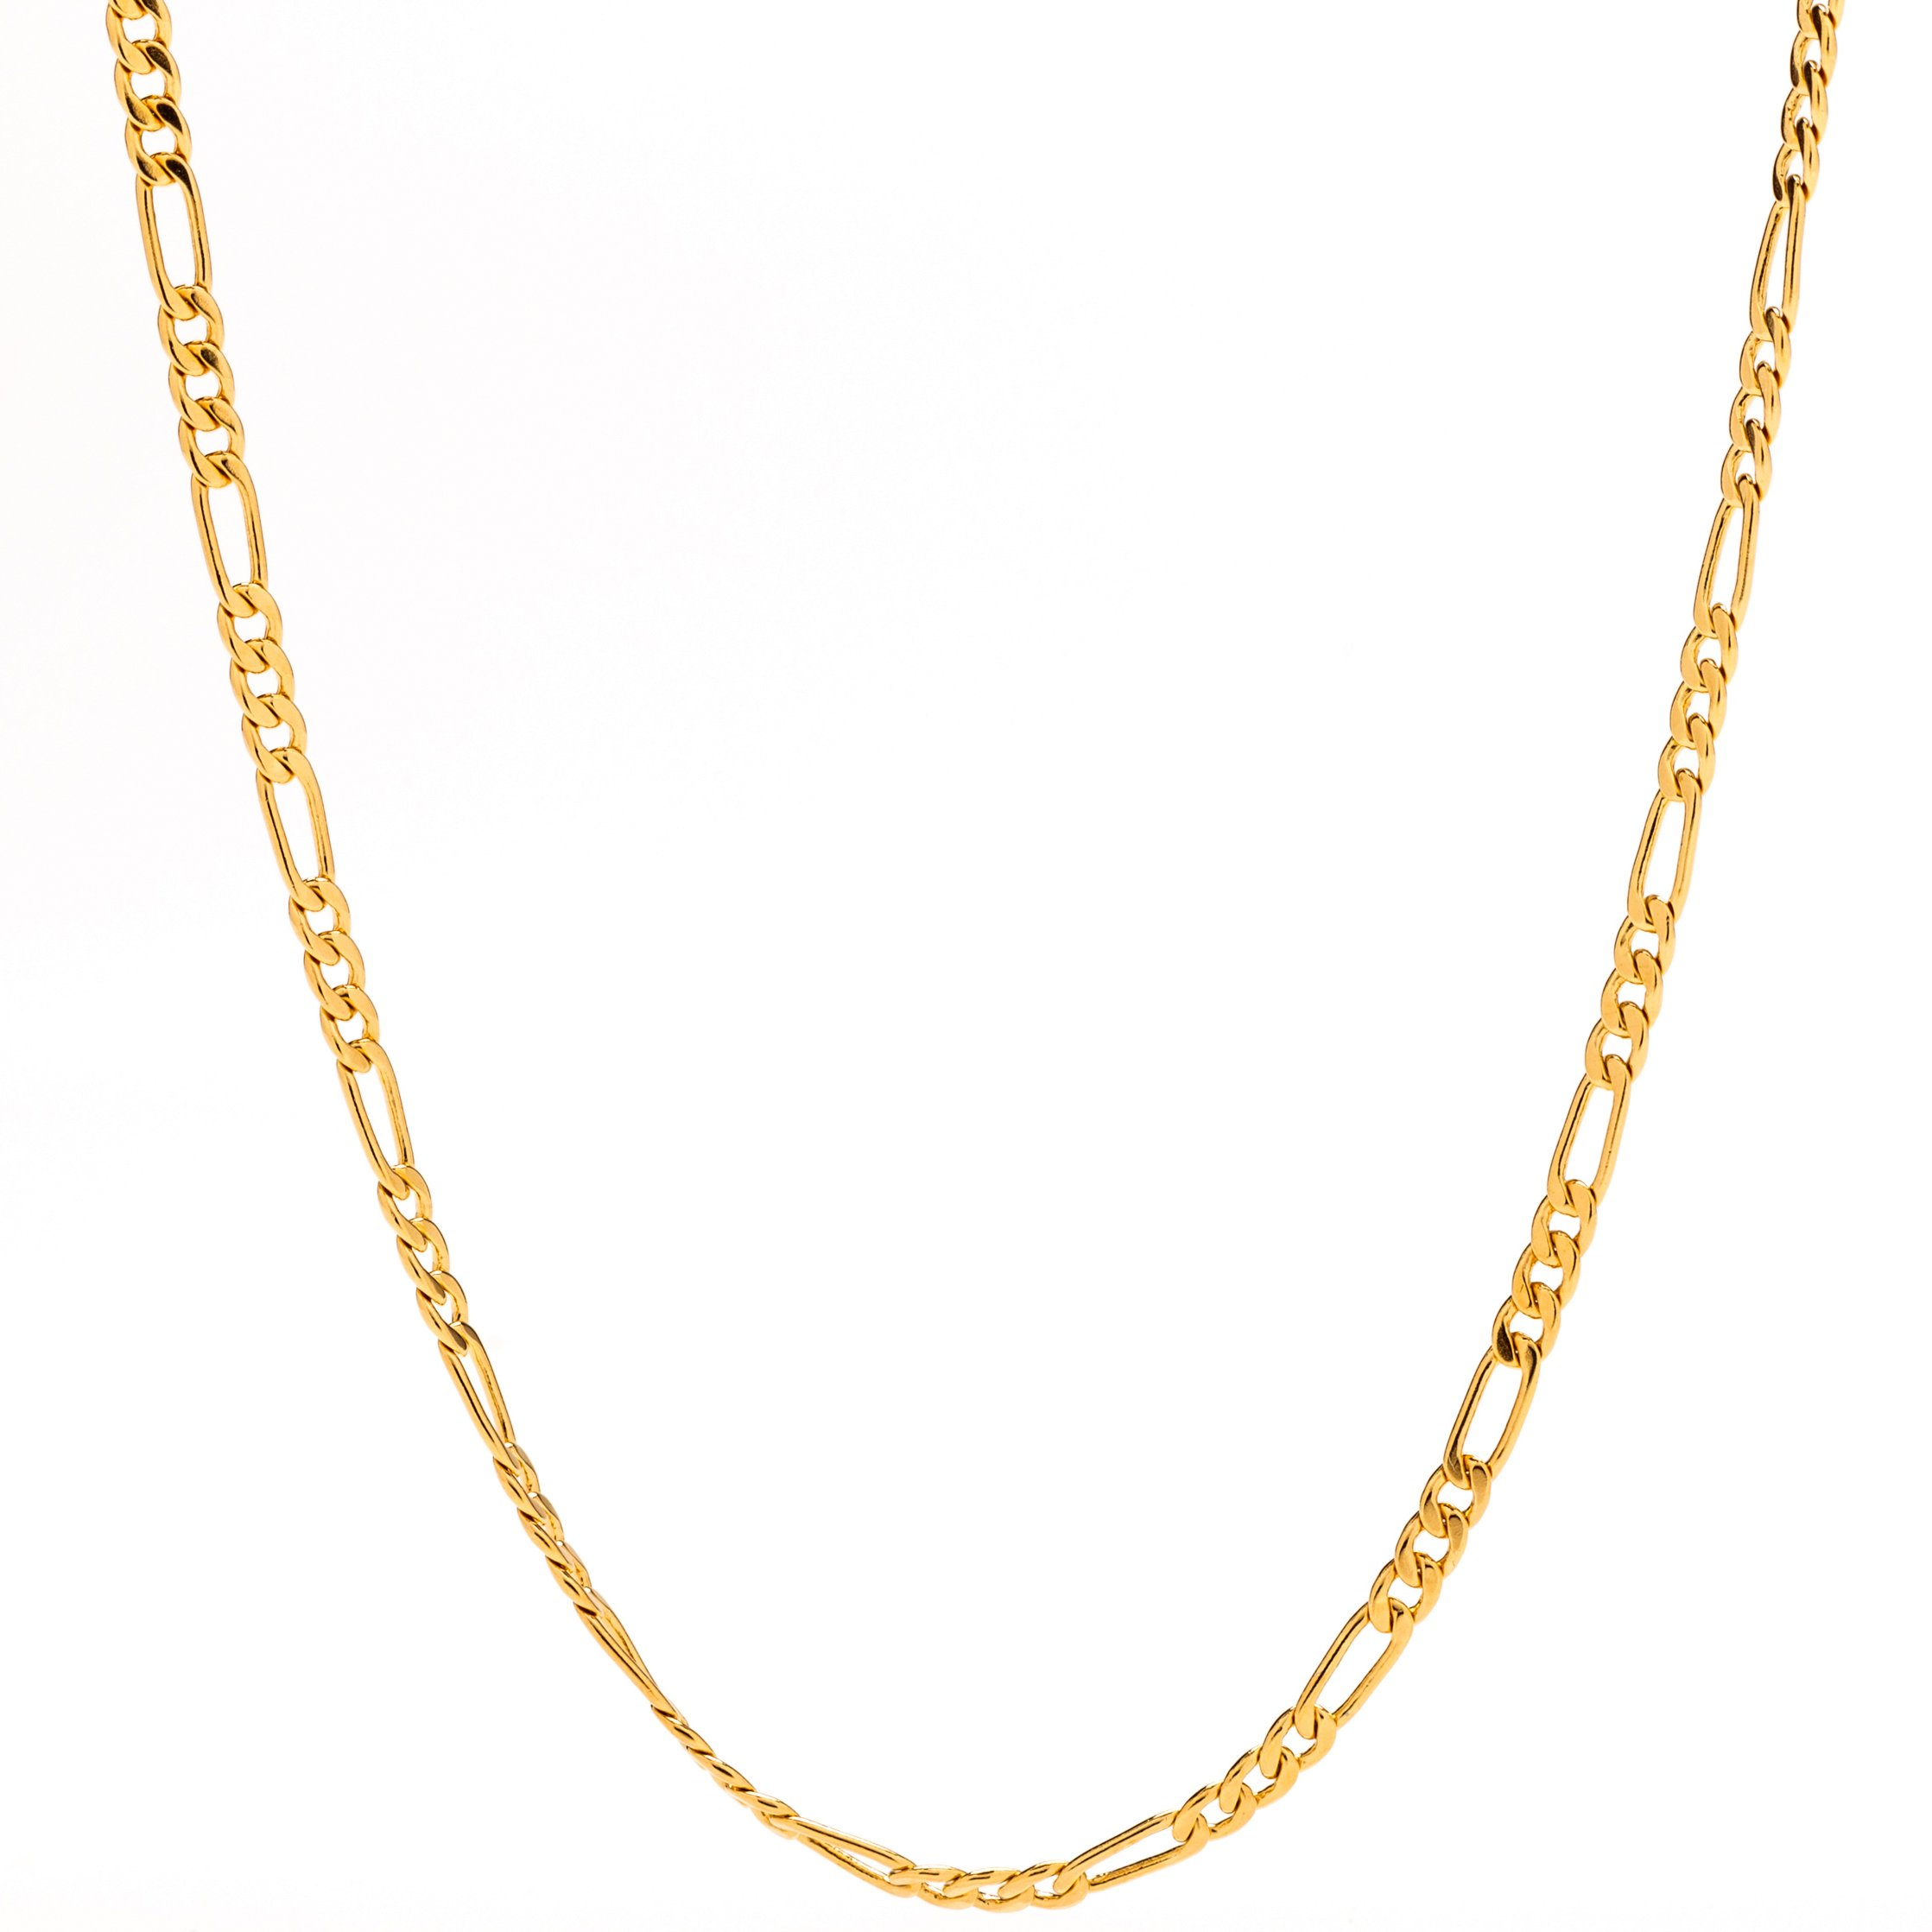 Lifetime Jewelry Figaro Chain 2.5MM, 24K Gold with Inlaid Bronze, Pendant Necklace, Guaranteed for Life, 16 to 30 Inches (30) by Lifetime Jewelry